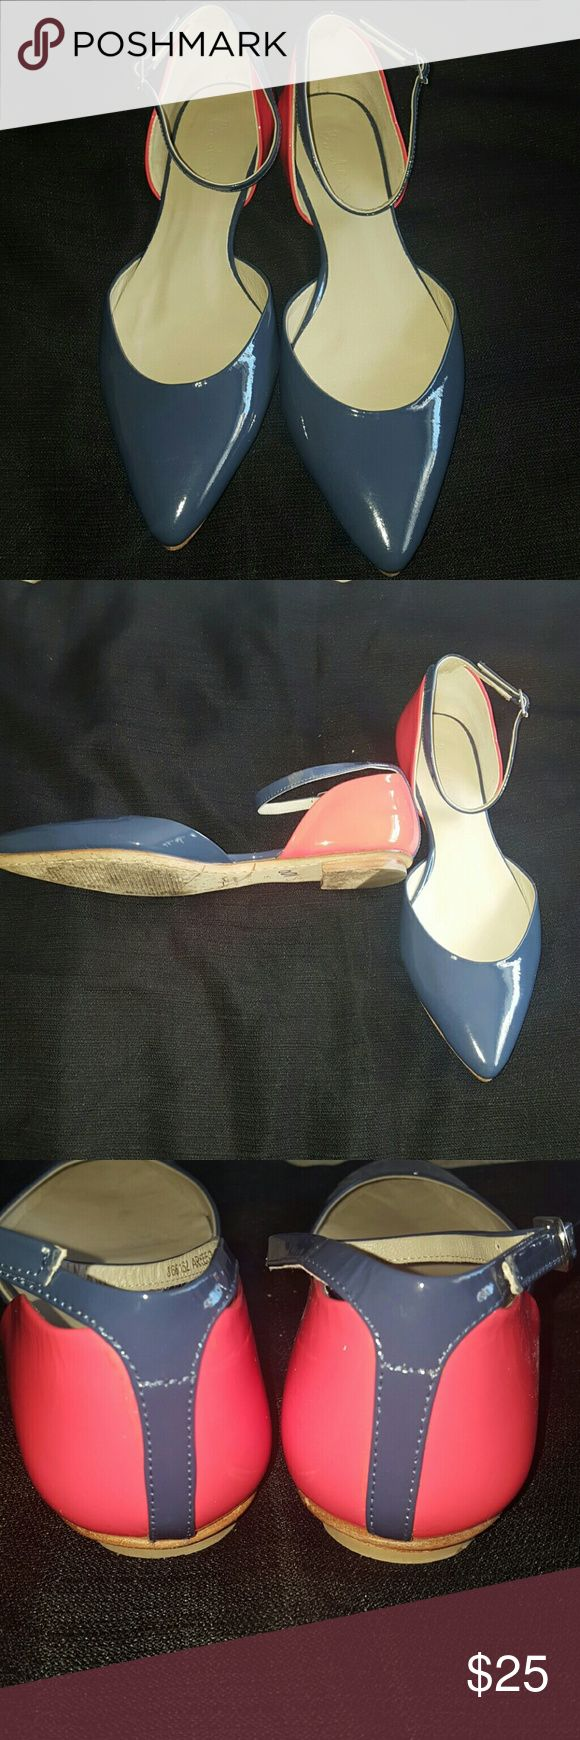 BODEN FLAT SHOES Beaches are in like new condition they've only been worn maybe once or twice inside is great no scuffs or scratches practically new great with a jeans or work and will be a fun pair for the summer. The. Olor2nd is more like a denim blue & lipstick orangeish red. Boden Shoes